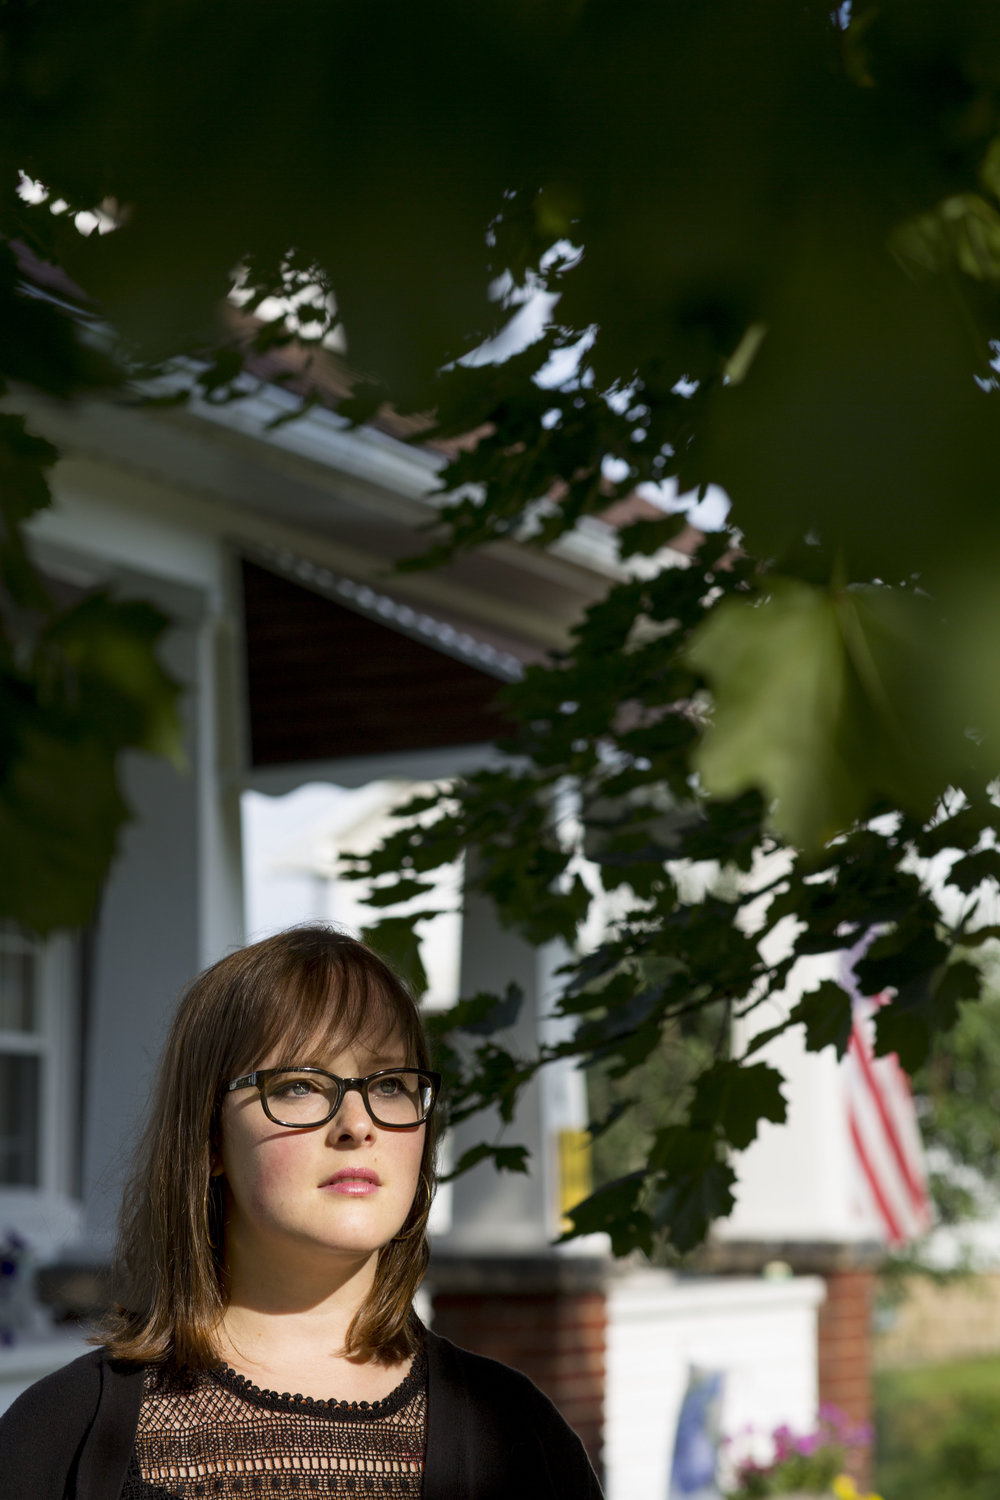 Mina Schultz, 30, stands in front of her mother's home on Wednesday, July 13, 2016 in Rivesville, W.Va. She was diagnosed with a rare form of bone cancer at age 25.